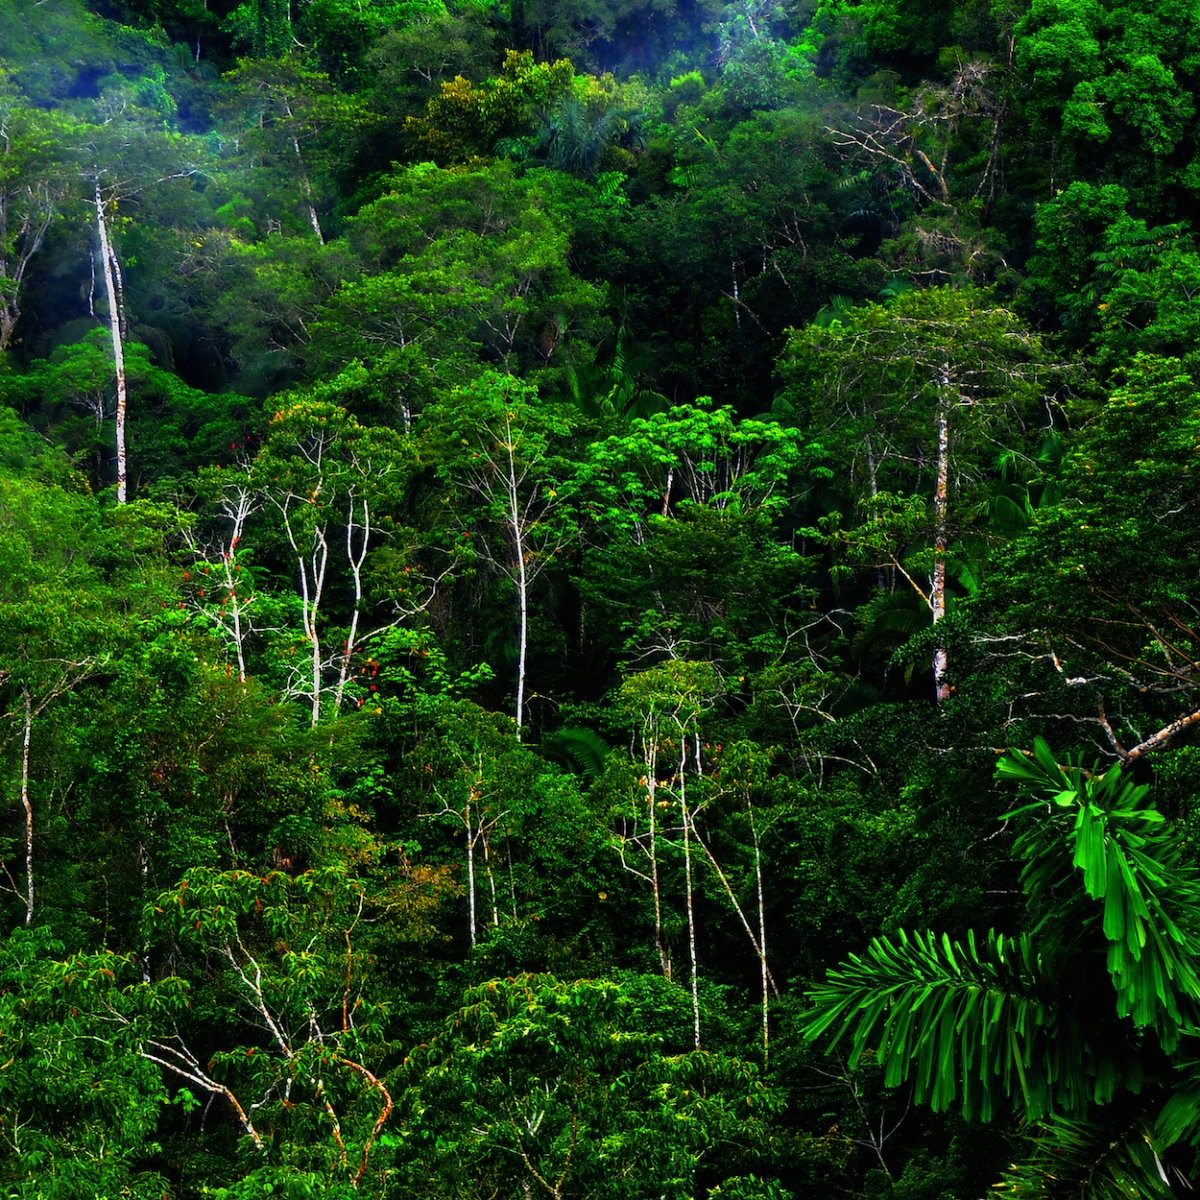 6 ways Brazil is saving the Amazon